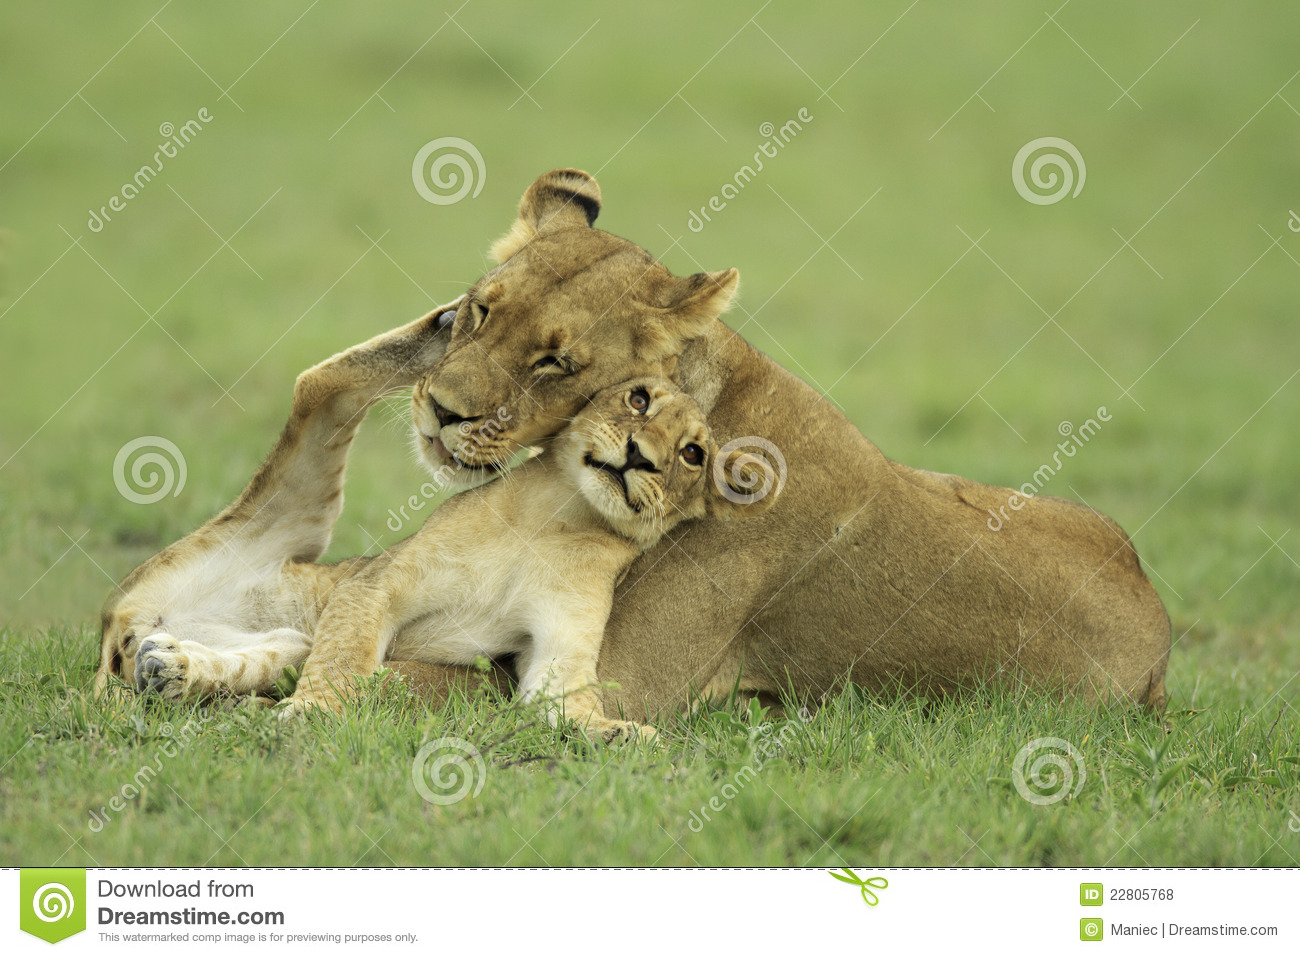 Cute Haunter Wallpaper Lion Cub And Lioness Stock Photo Image Of Mother